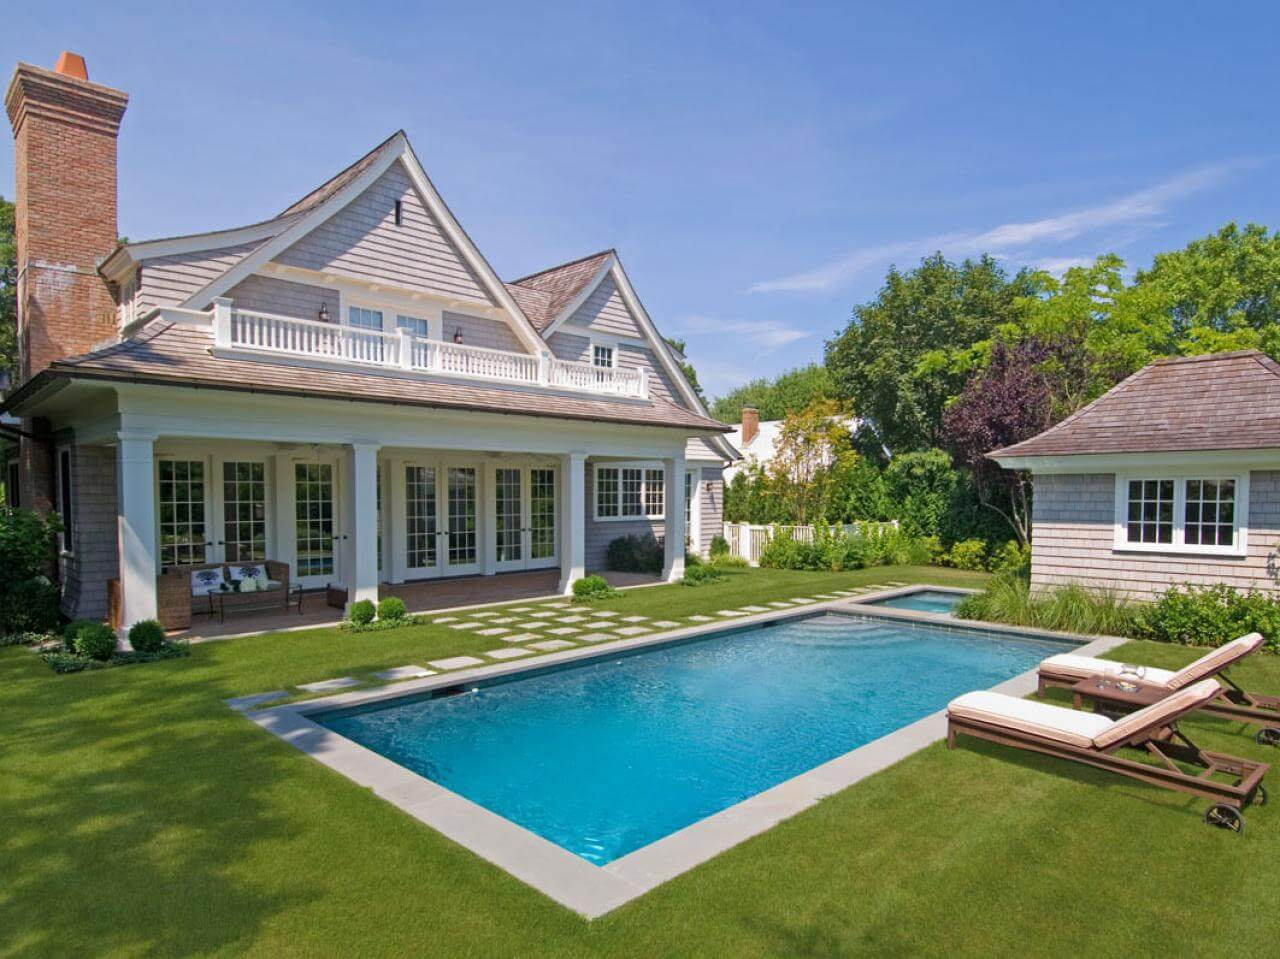 Here's how to heat your pool the smart way